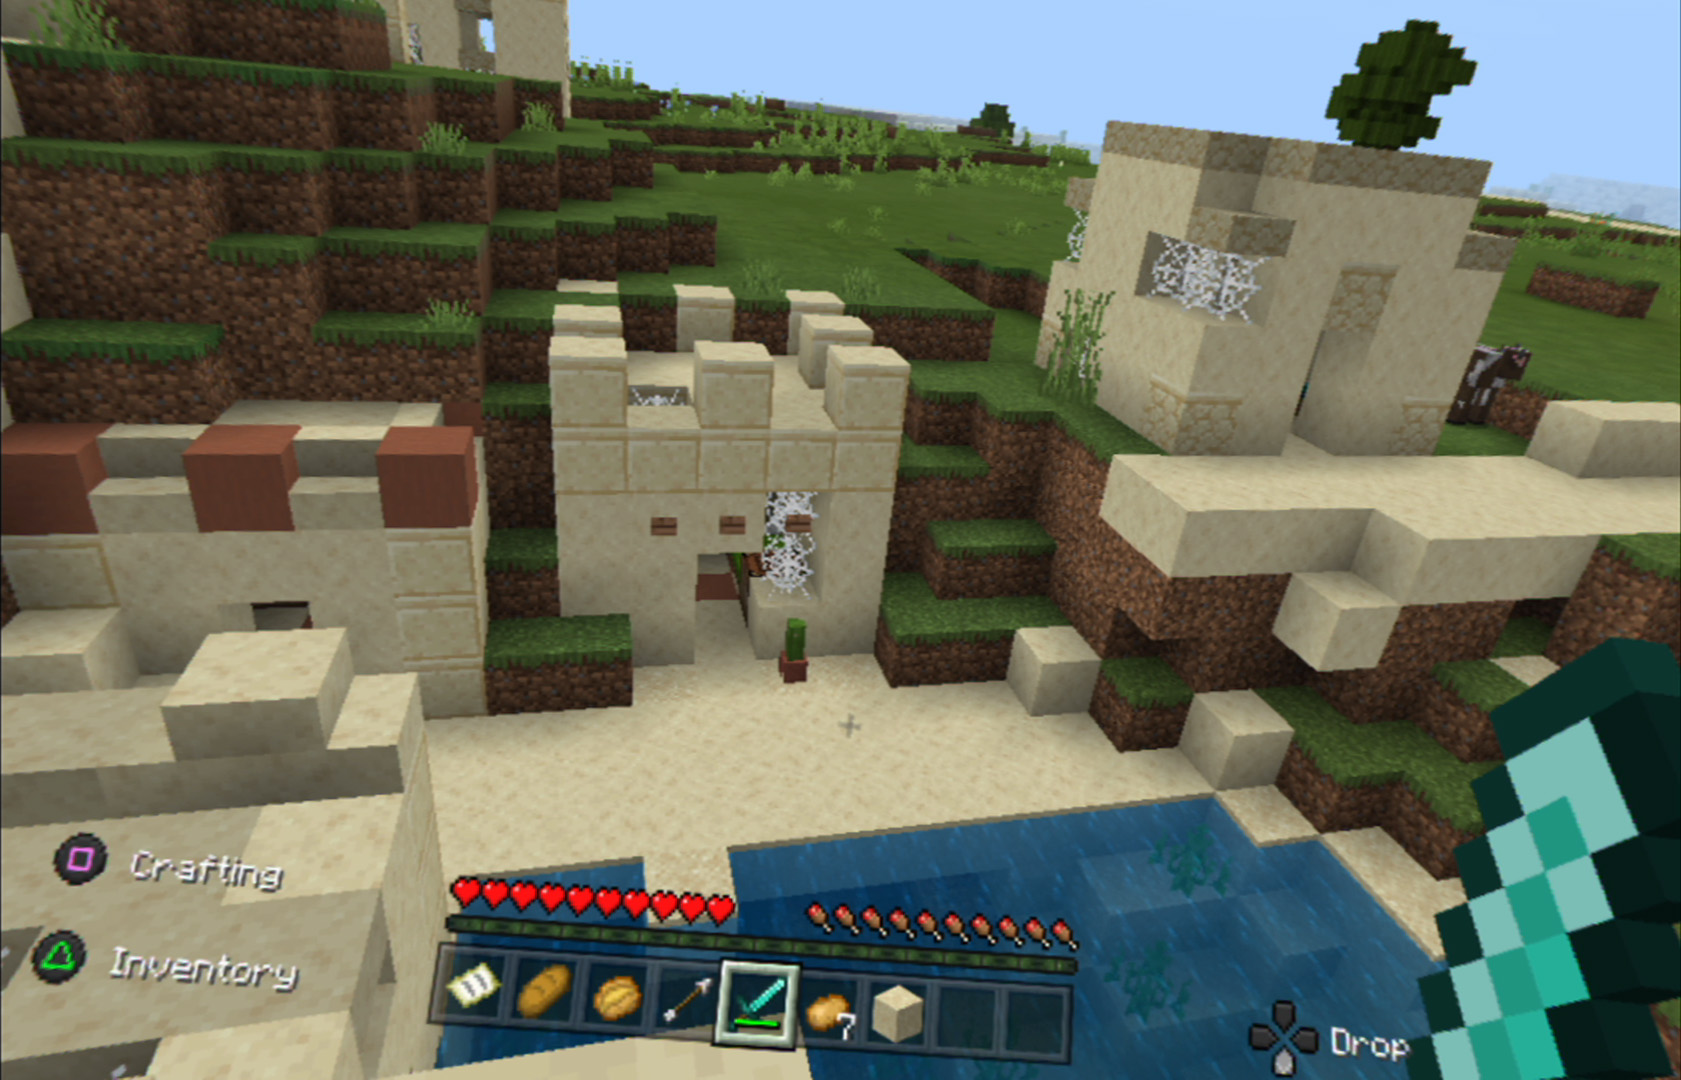 Minecraft is getting PlayStation VR support on PS4